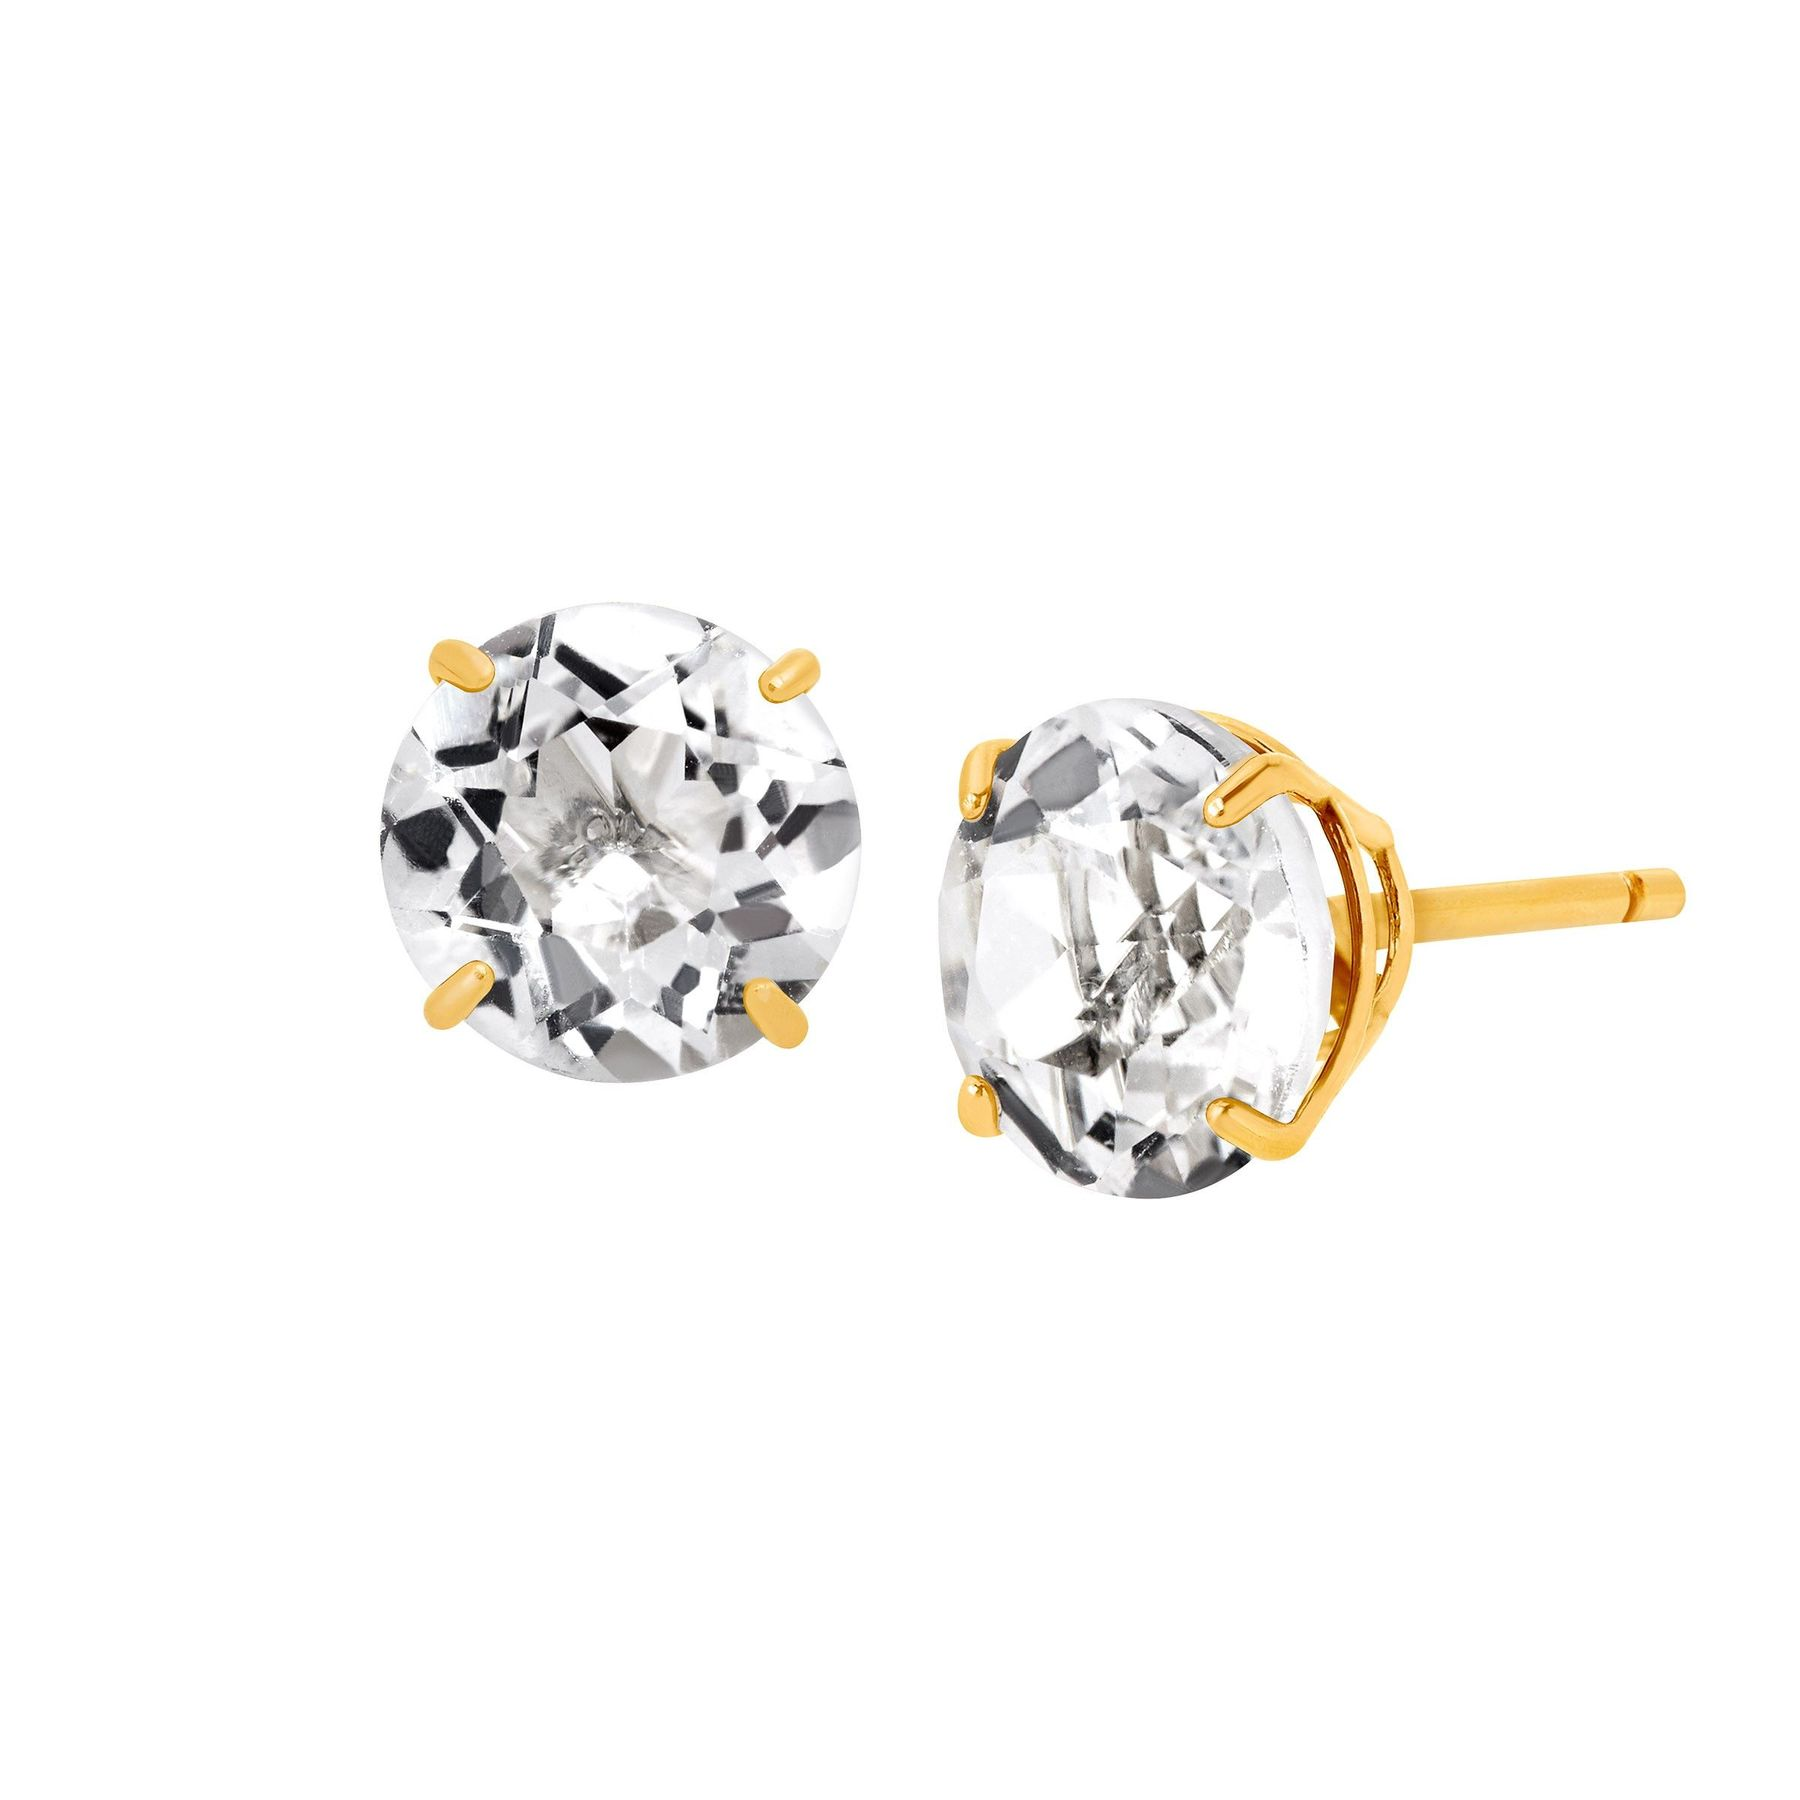 10k Yellow Gold Square Stud Earrings Clear White CZ~April Birthstone